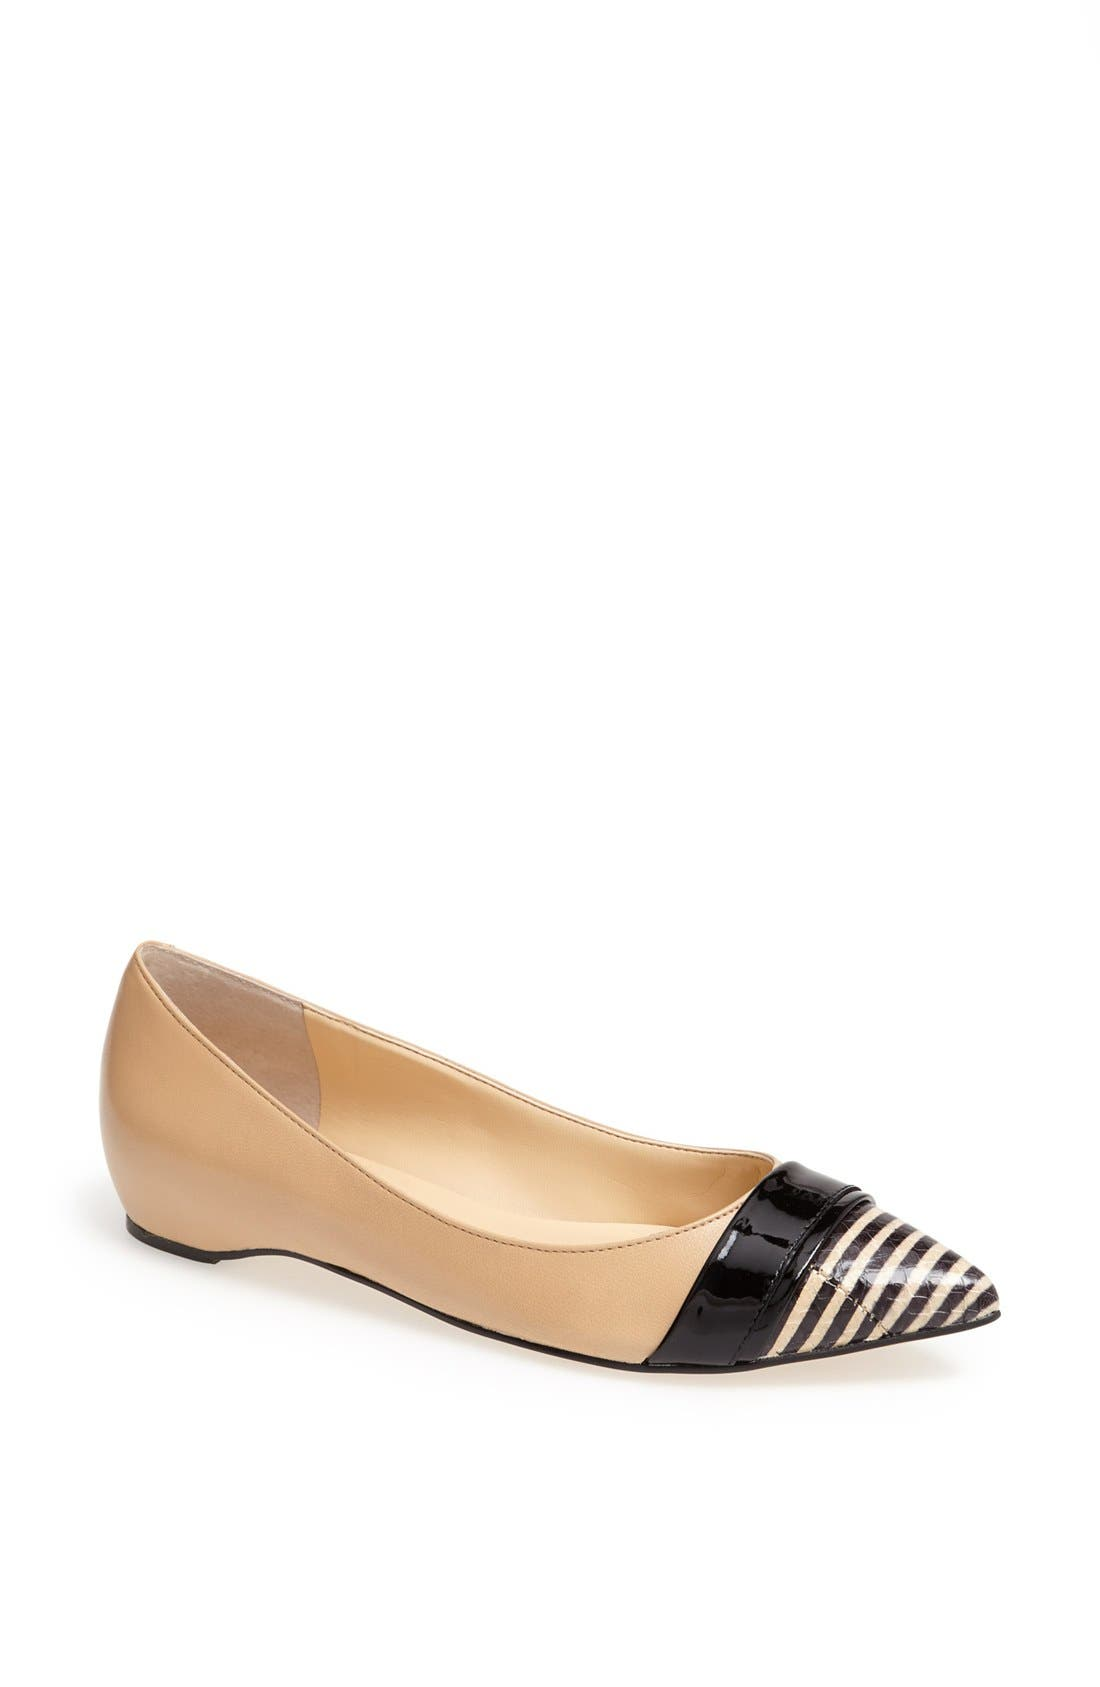 Alternate Image 1 Selected - Ivanka Trump 'Carmen' Flat